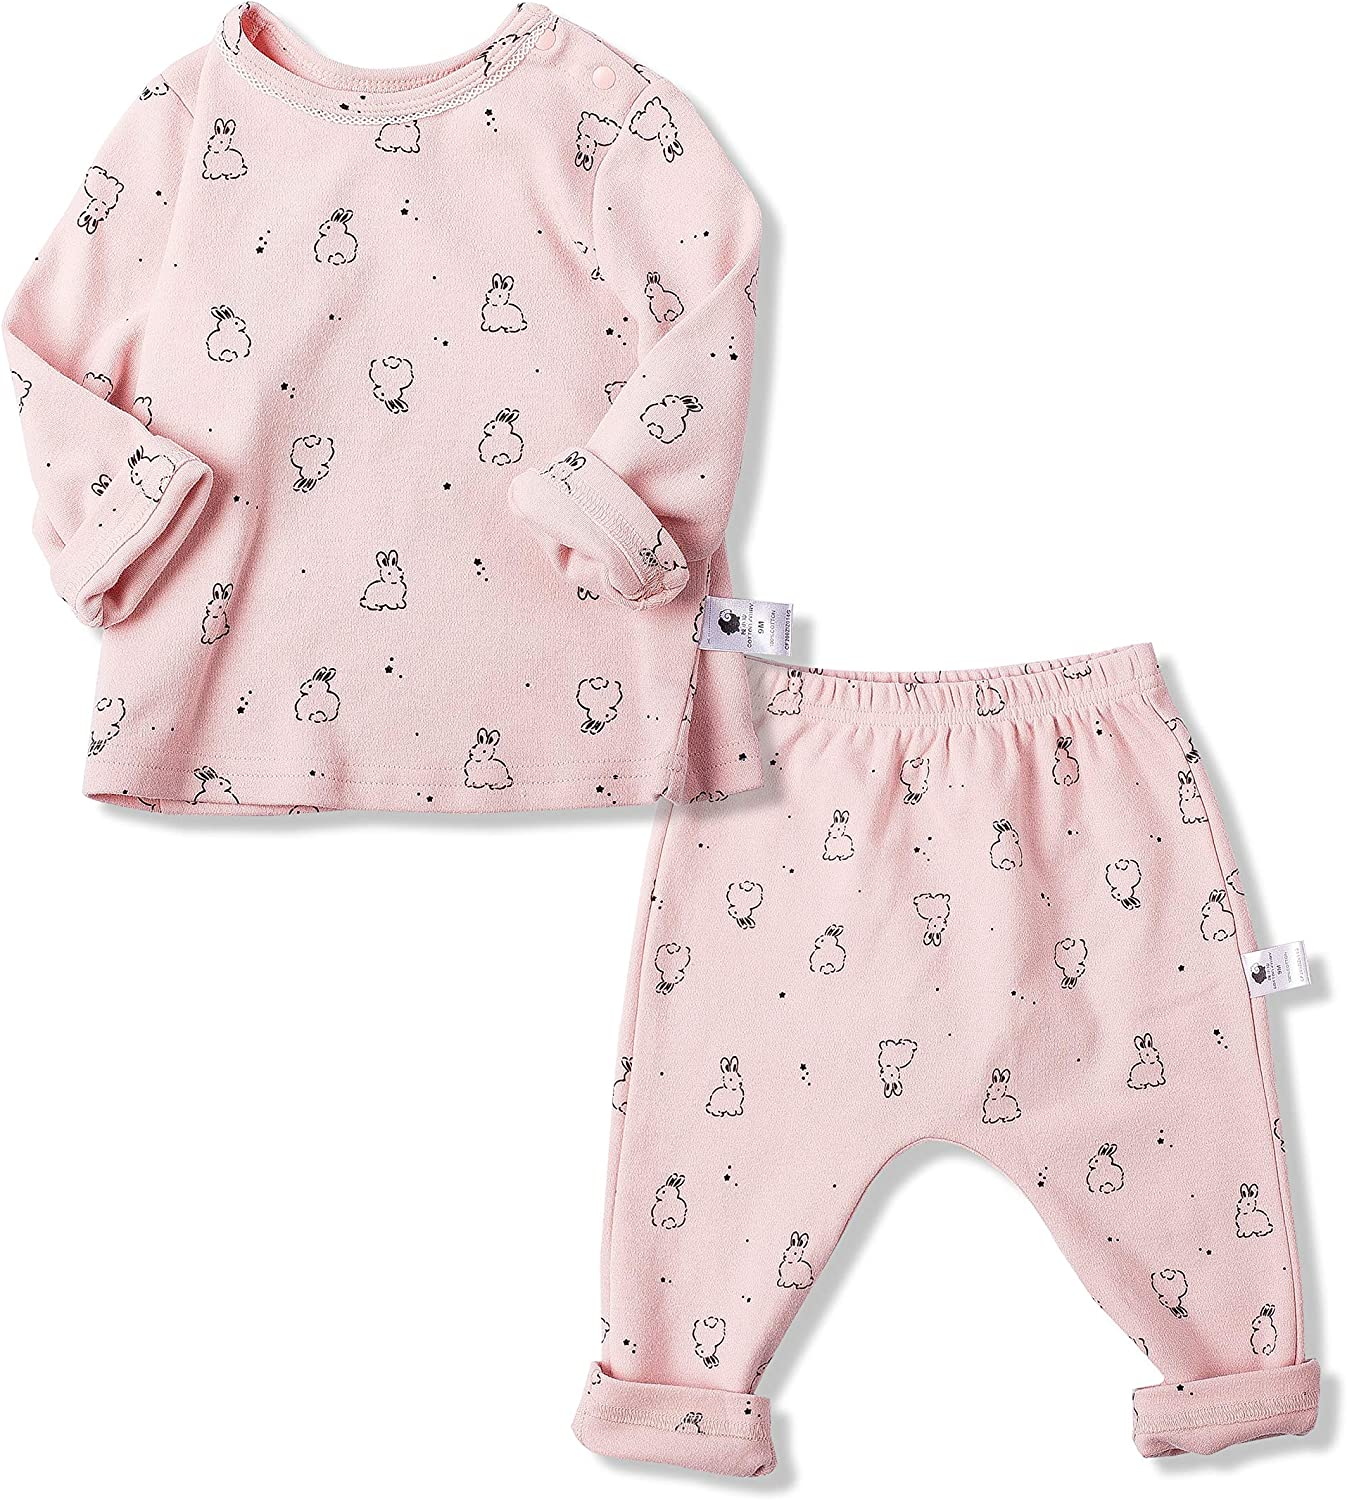 COTTON FAIRY Baby Girls Clothes Set 2-Piece Playwear Set Long-Sleeve Shirts and Pants